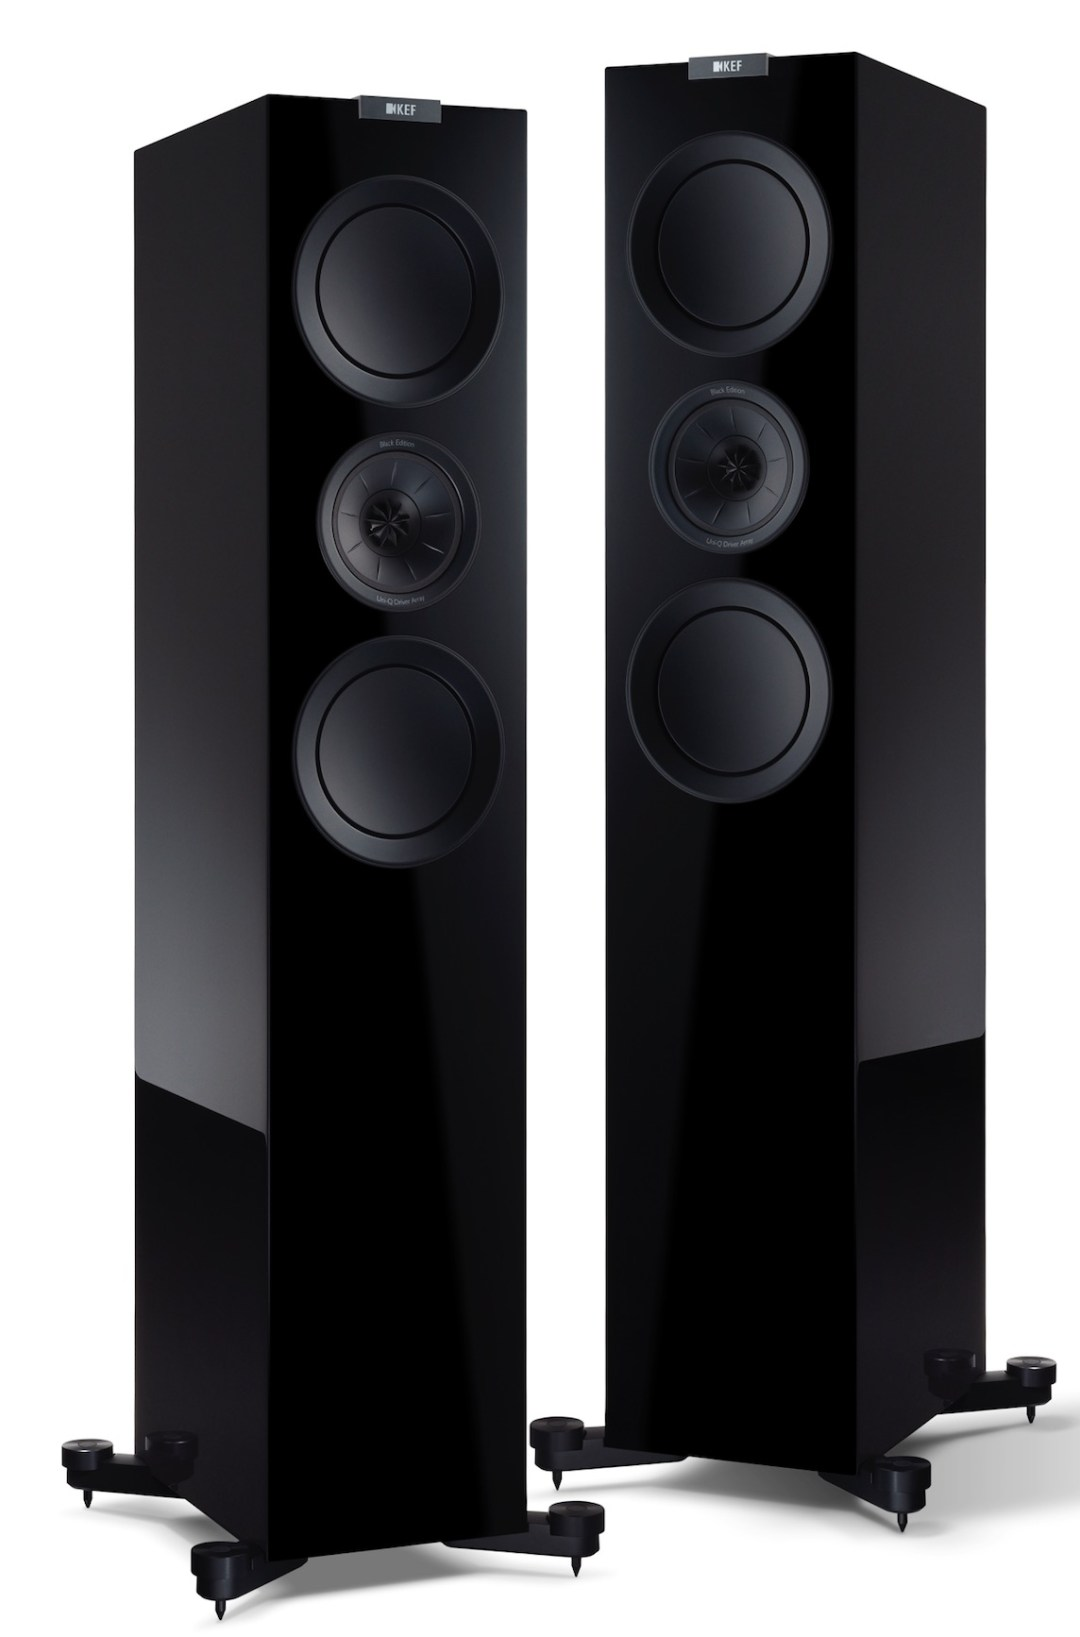 BLUEOS, KEF & CHORD: NOW WITH ADDED EXTRAS…